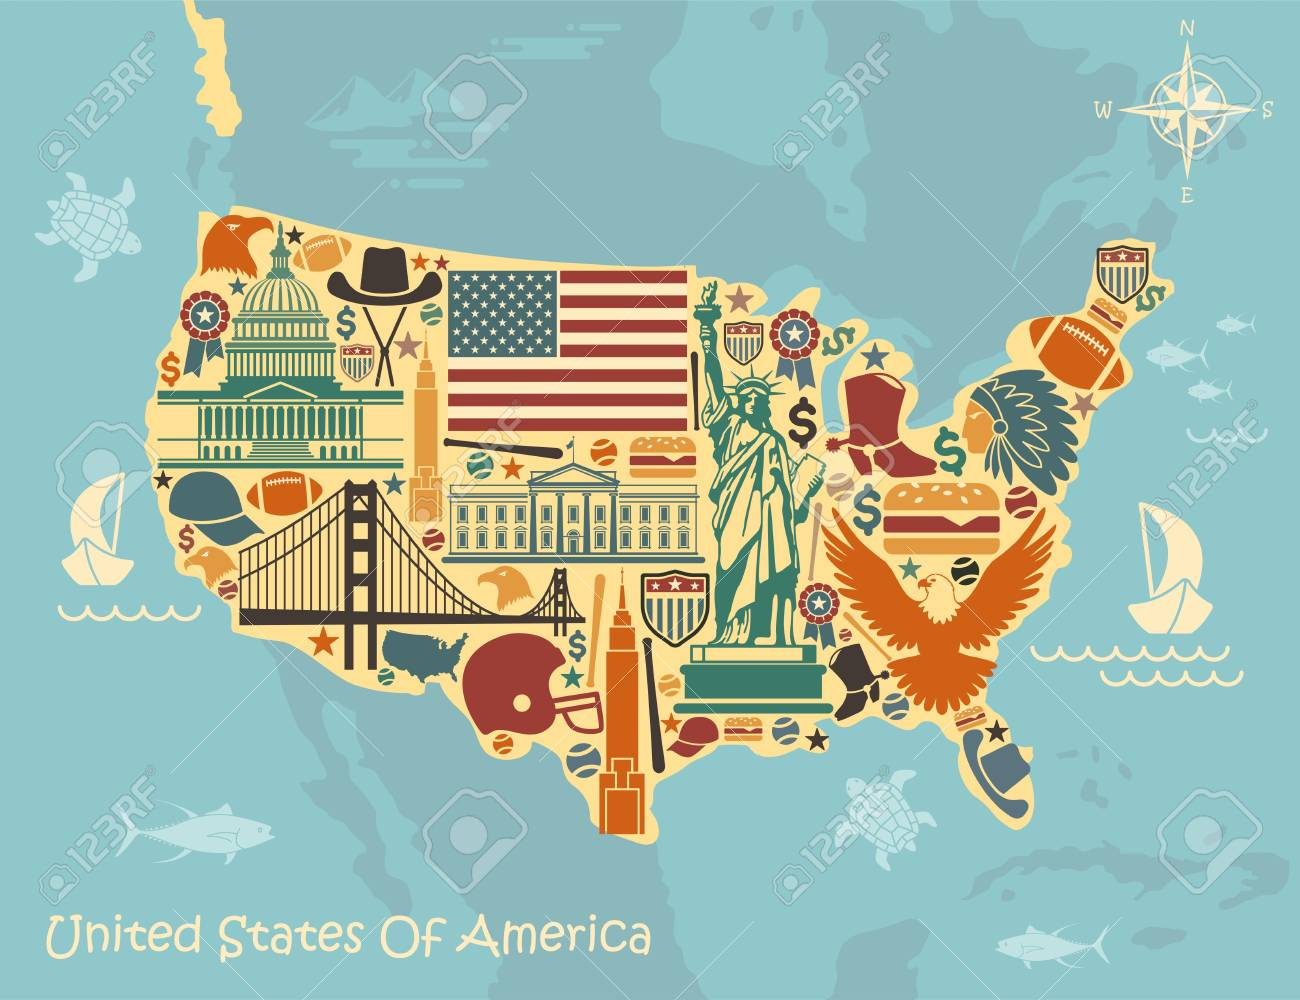 A Picture Of The Map Of The United States.Stylized Map Of The United States With American Symbols